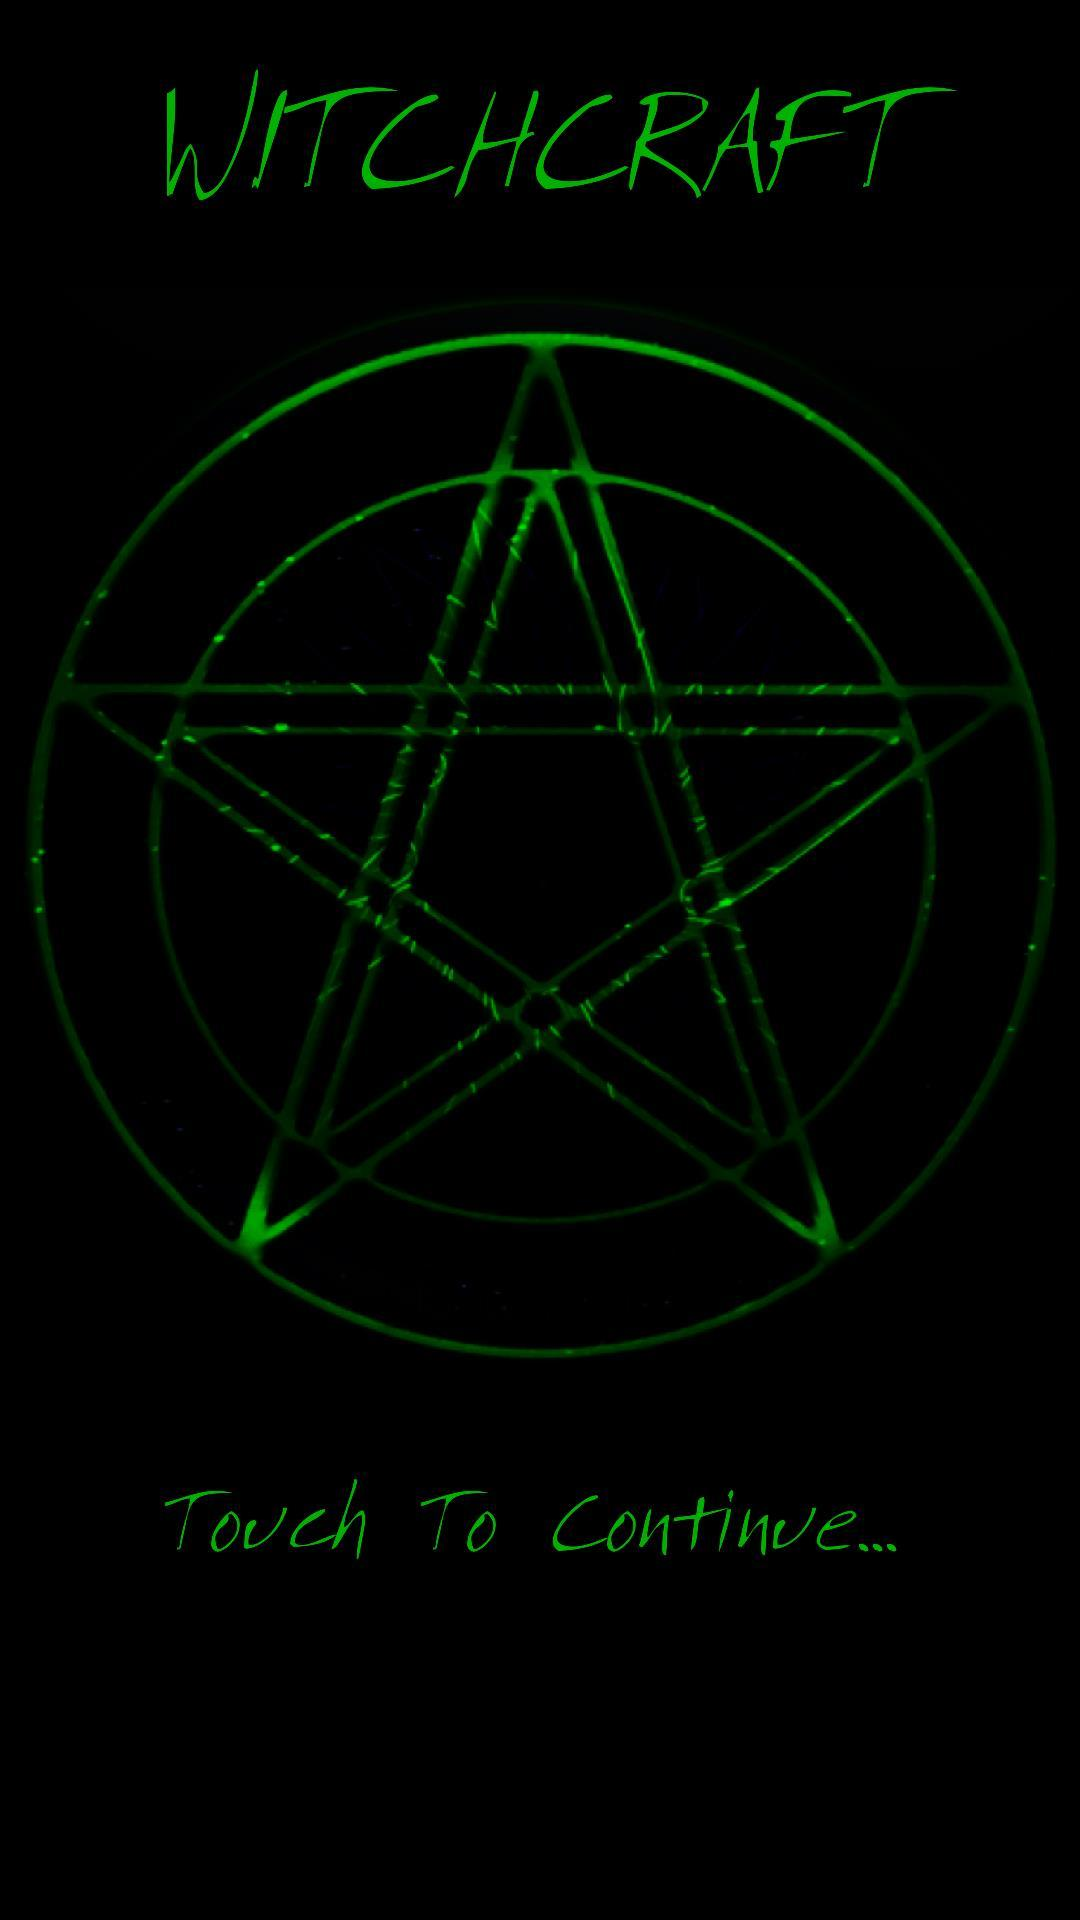 Wicca & Witchcraft Free Magic Spells Book for Android - APK